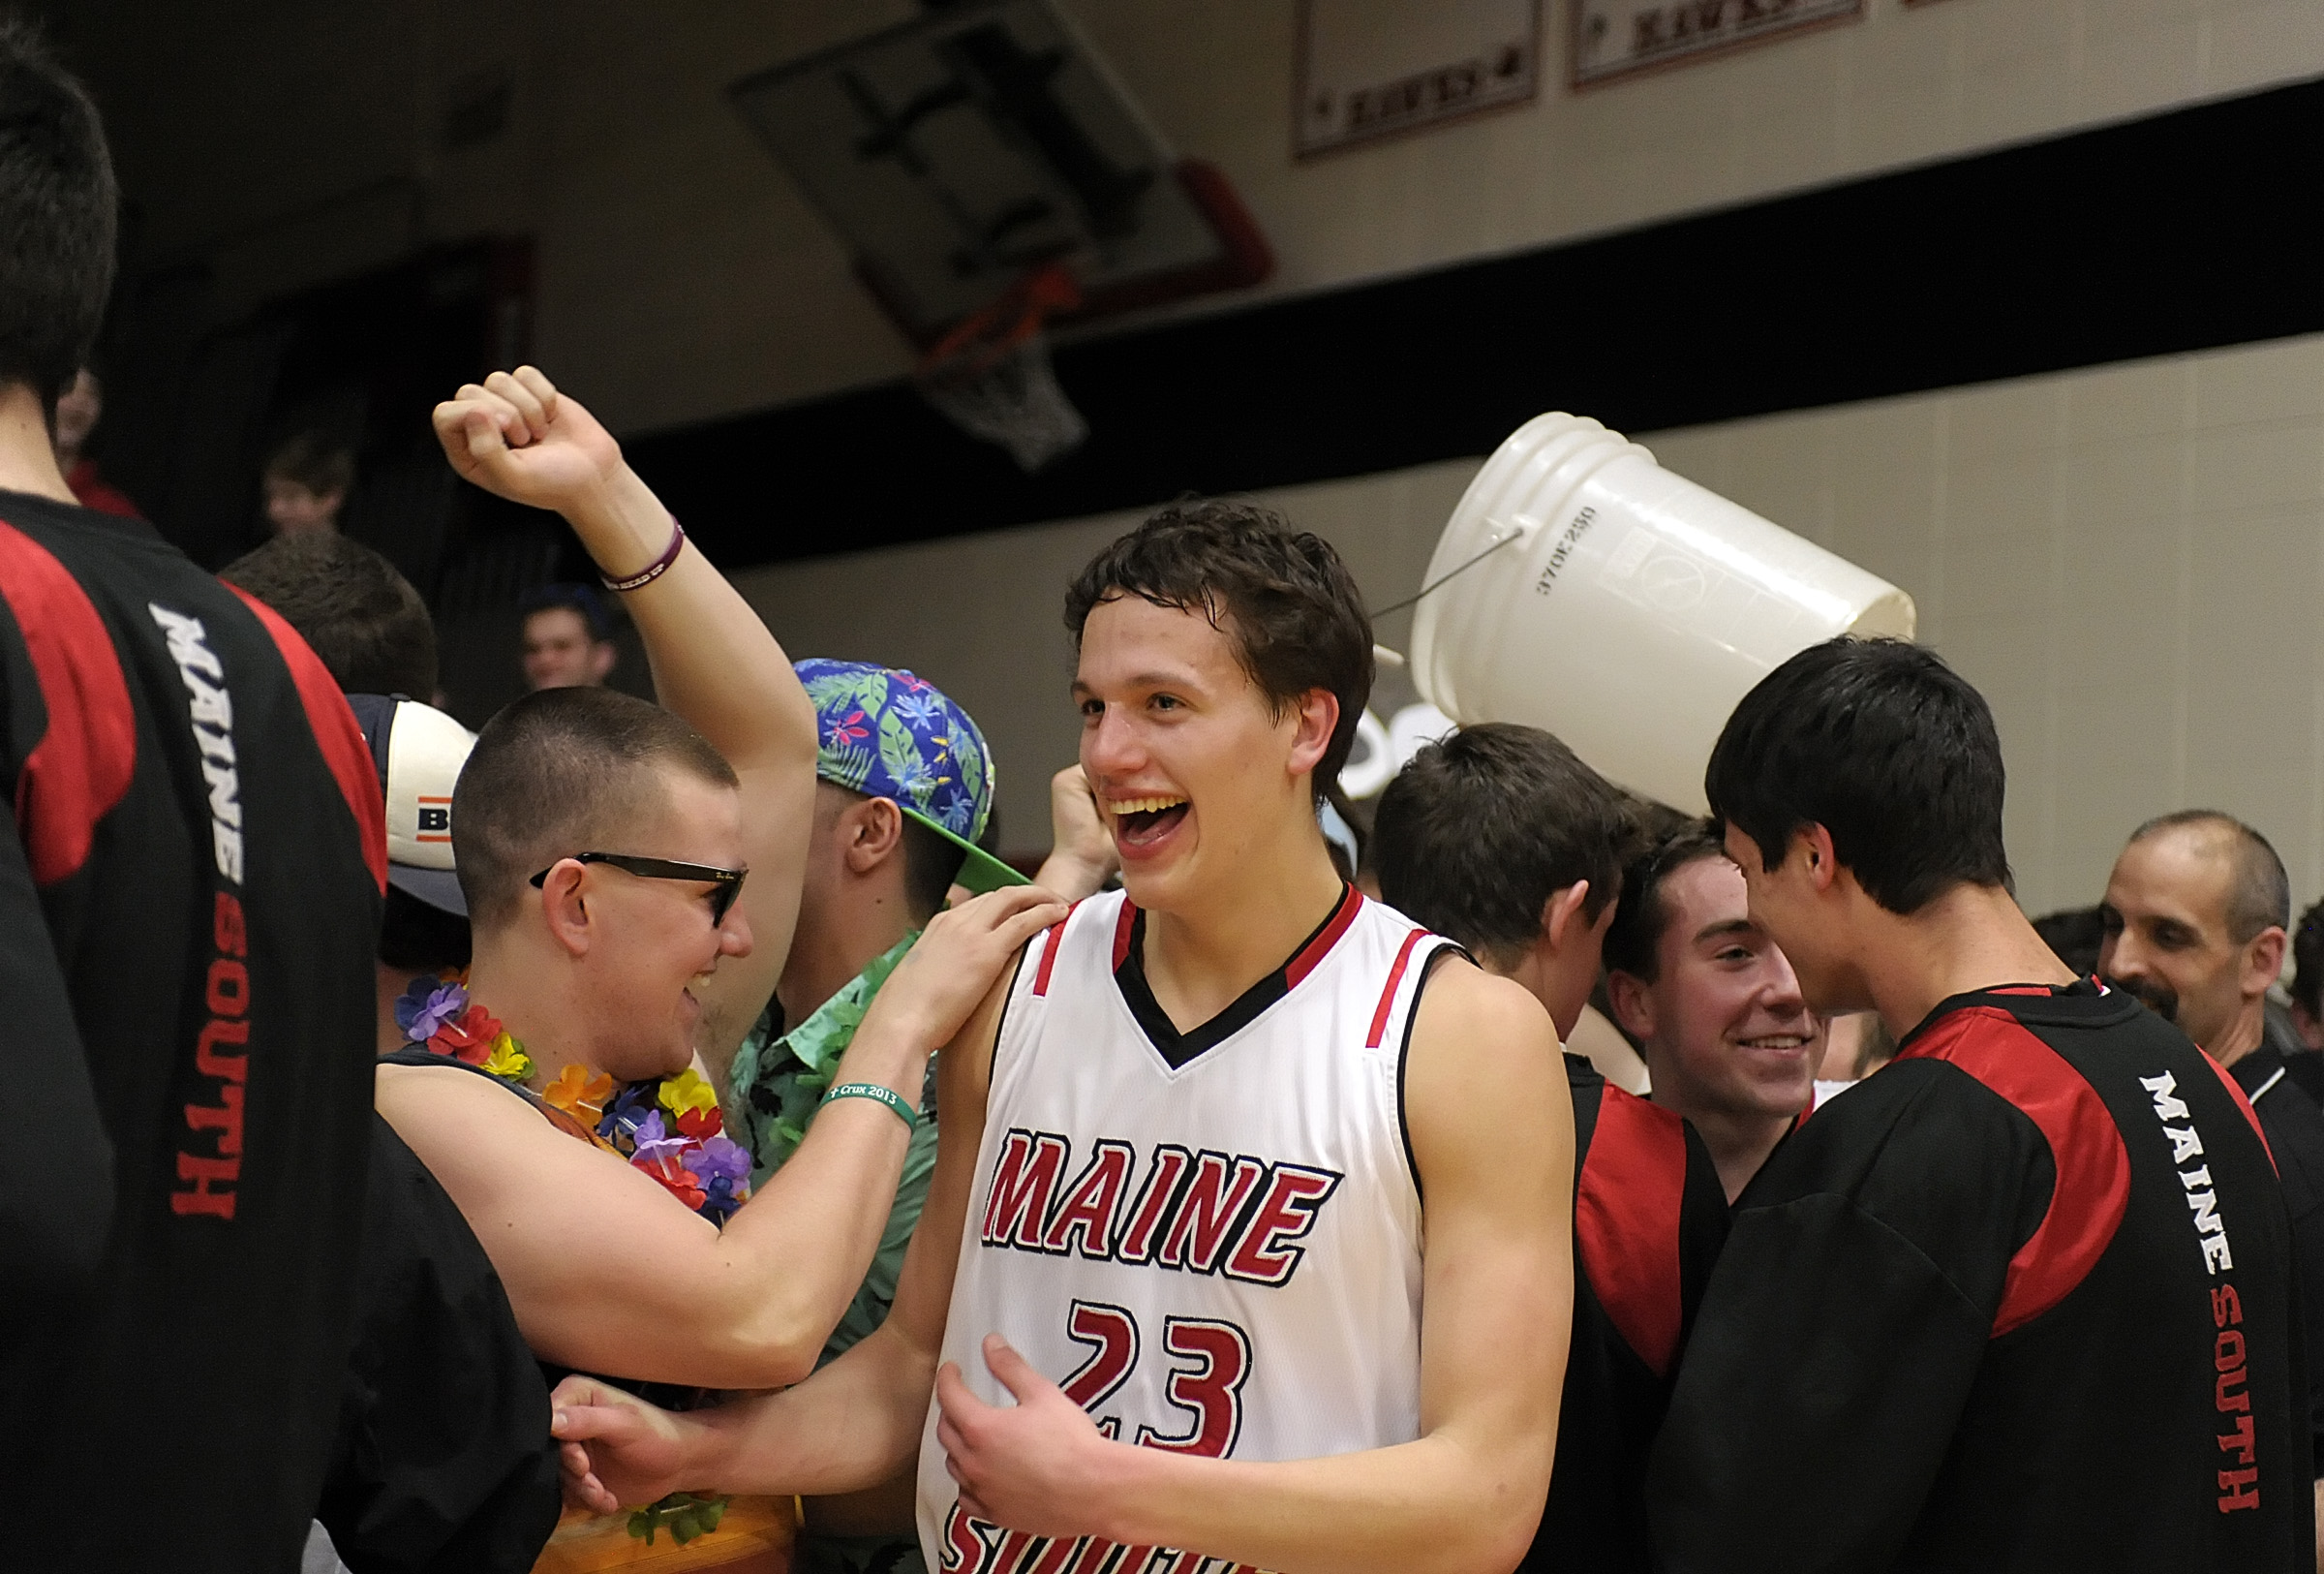 Maine South's Andrew Palucki celebrates with the fans after the Hawks defeated Evanston 74-66 (OT) in the Class 4A Maine South Sectional in 2014.